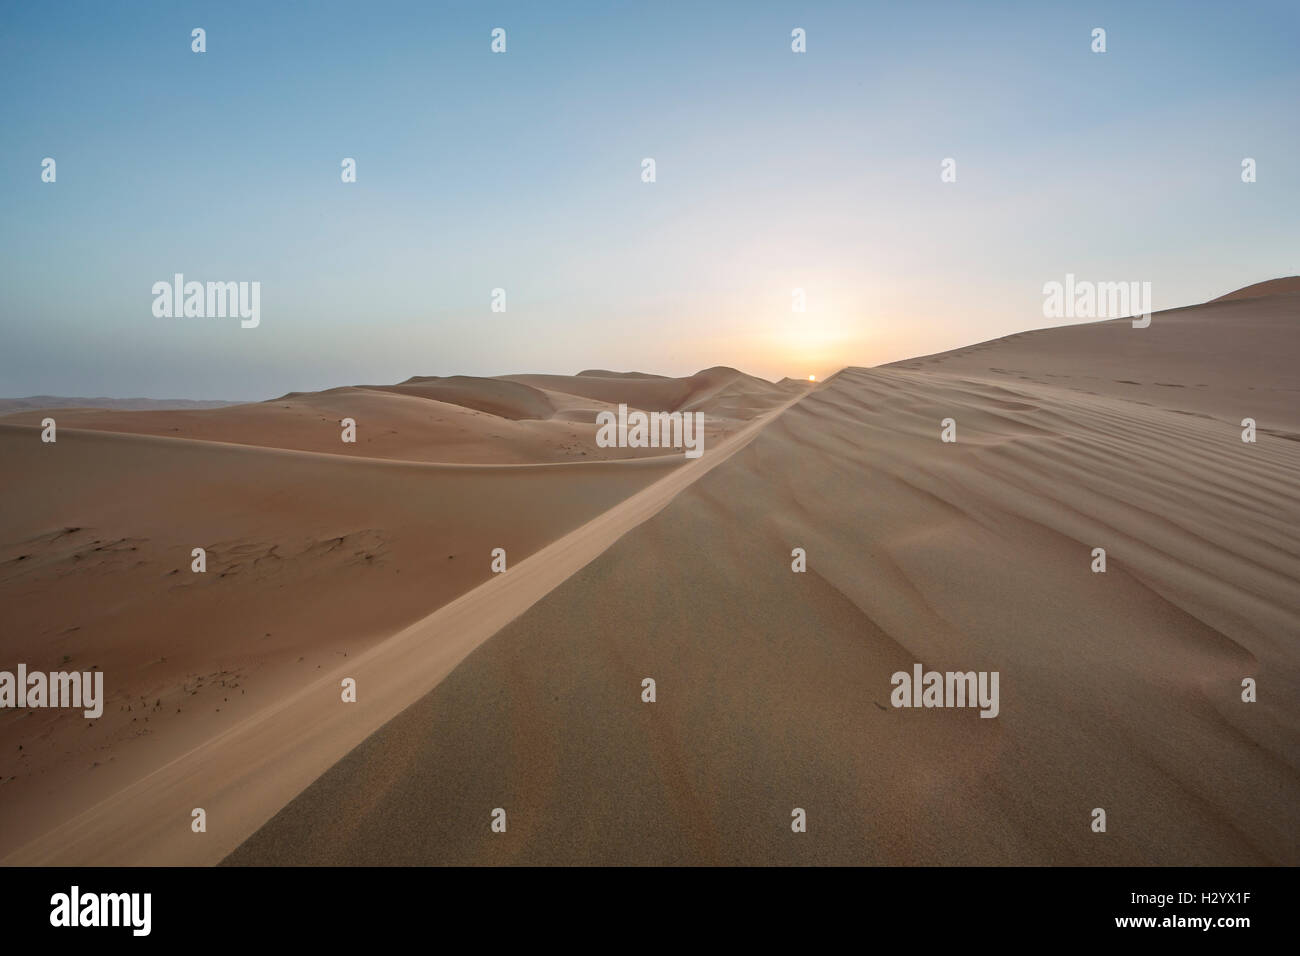 Massive sand dunes of the Empty Quarter desert, covering large area in UAE, KSA and Oman - Stock Image